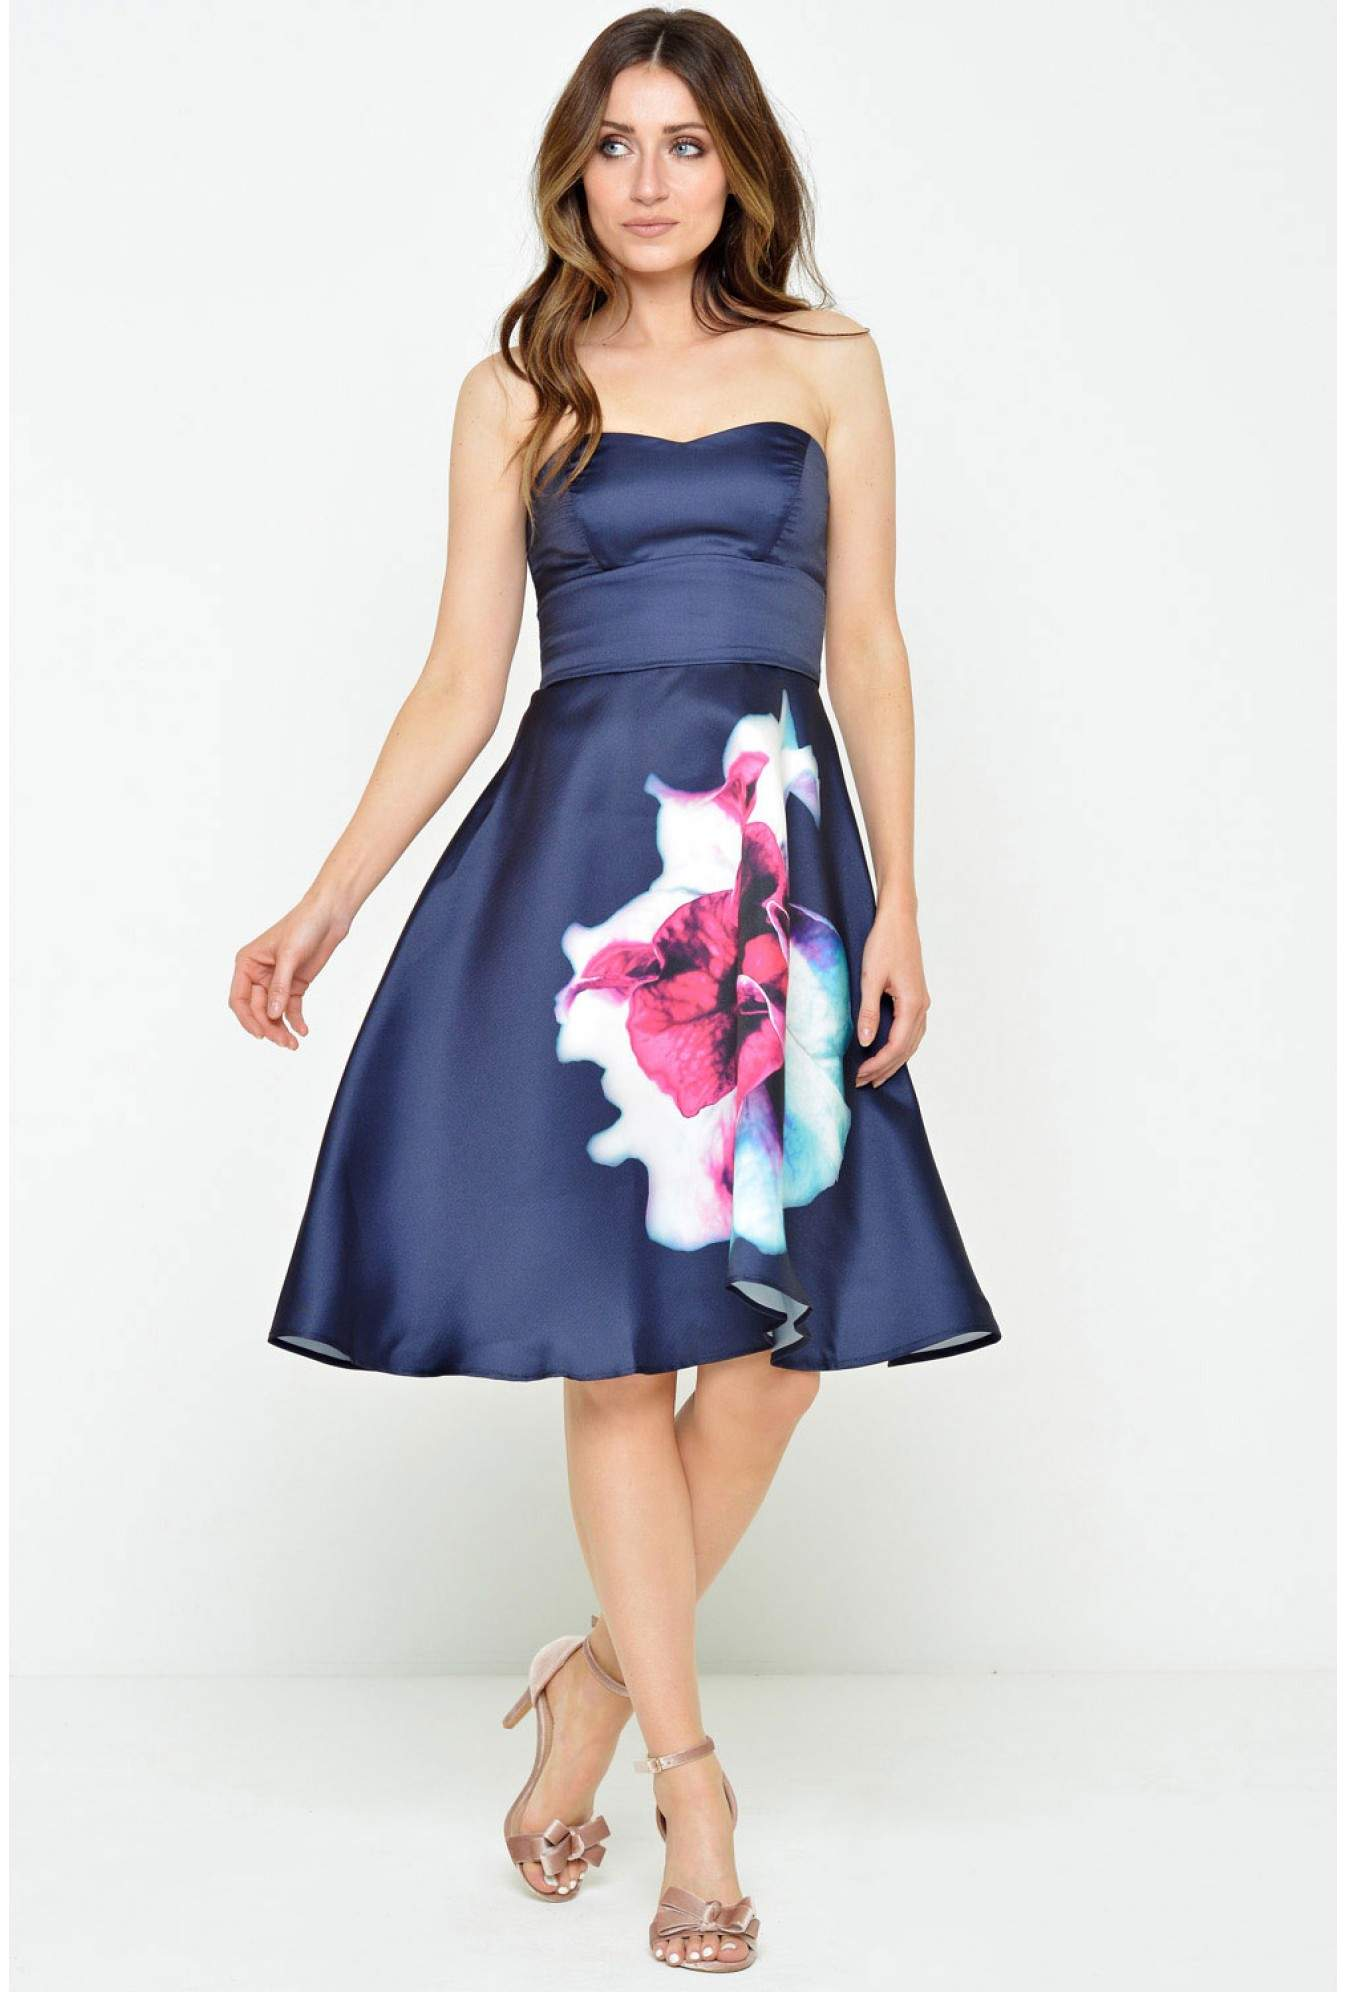 fde1321b82 More Views. Dakota Floral Print Dress in Navy